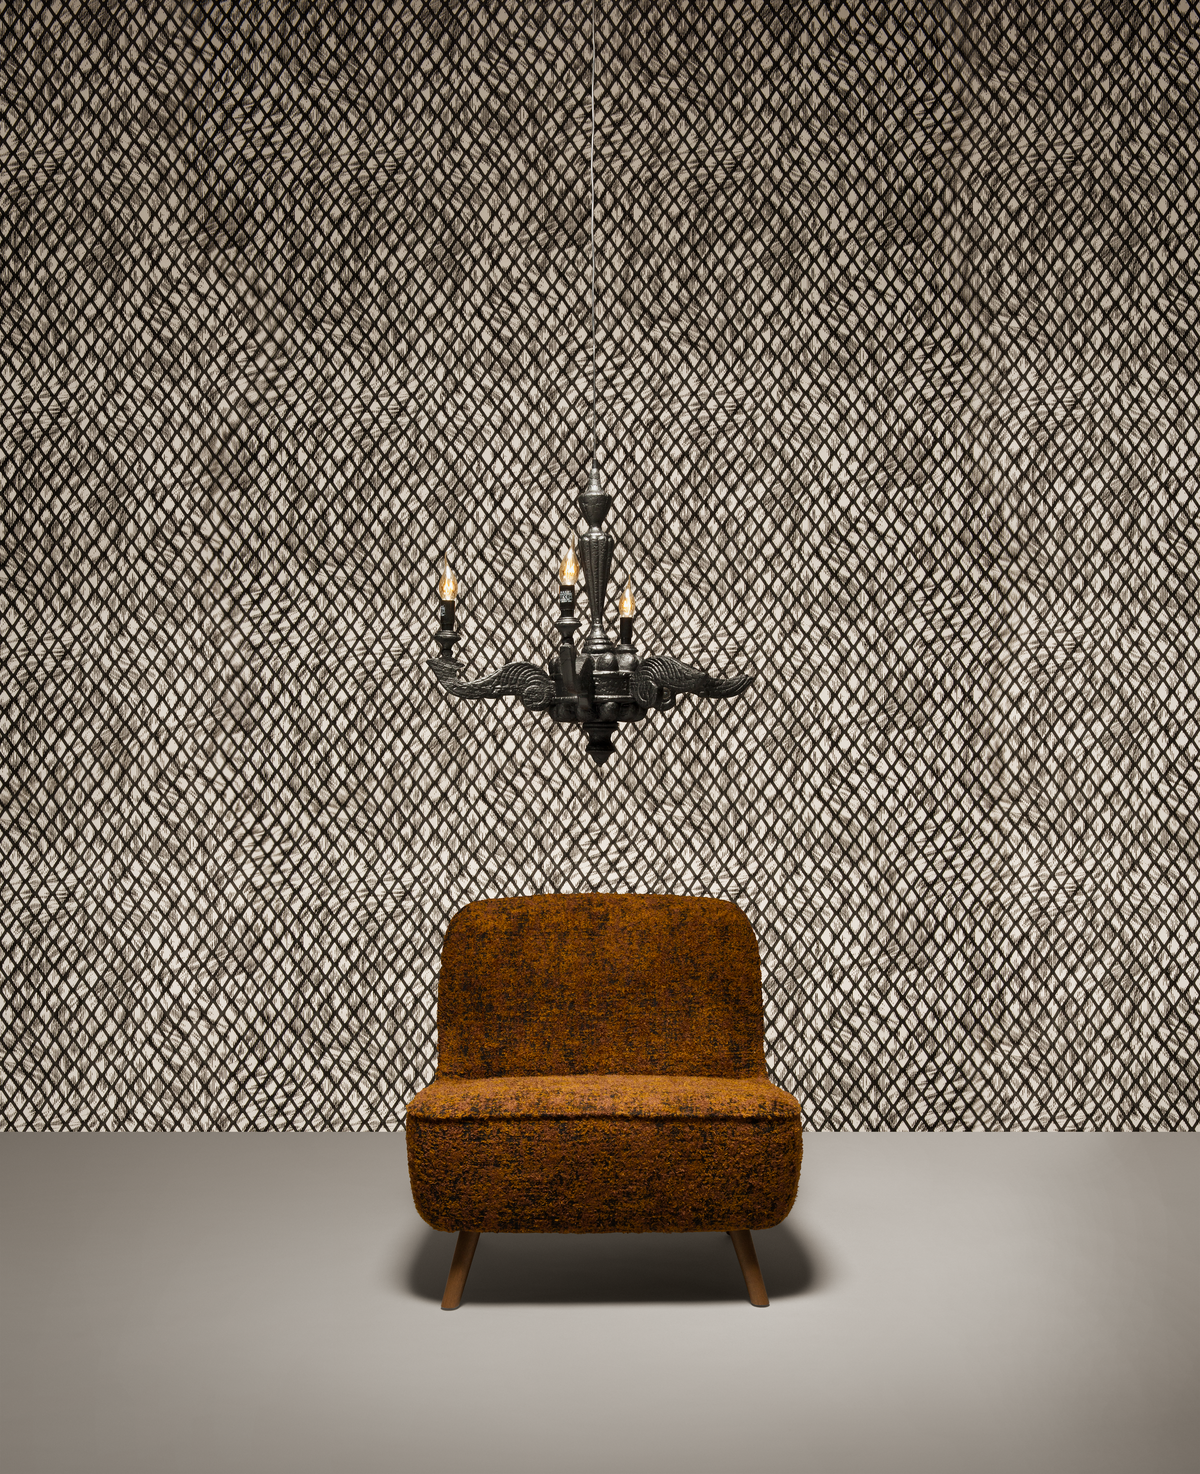 Poetic composition Cocktail Chair, Smoke Chandelier and Moooi Wallcovering